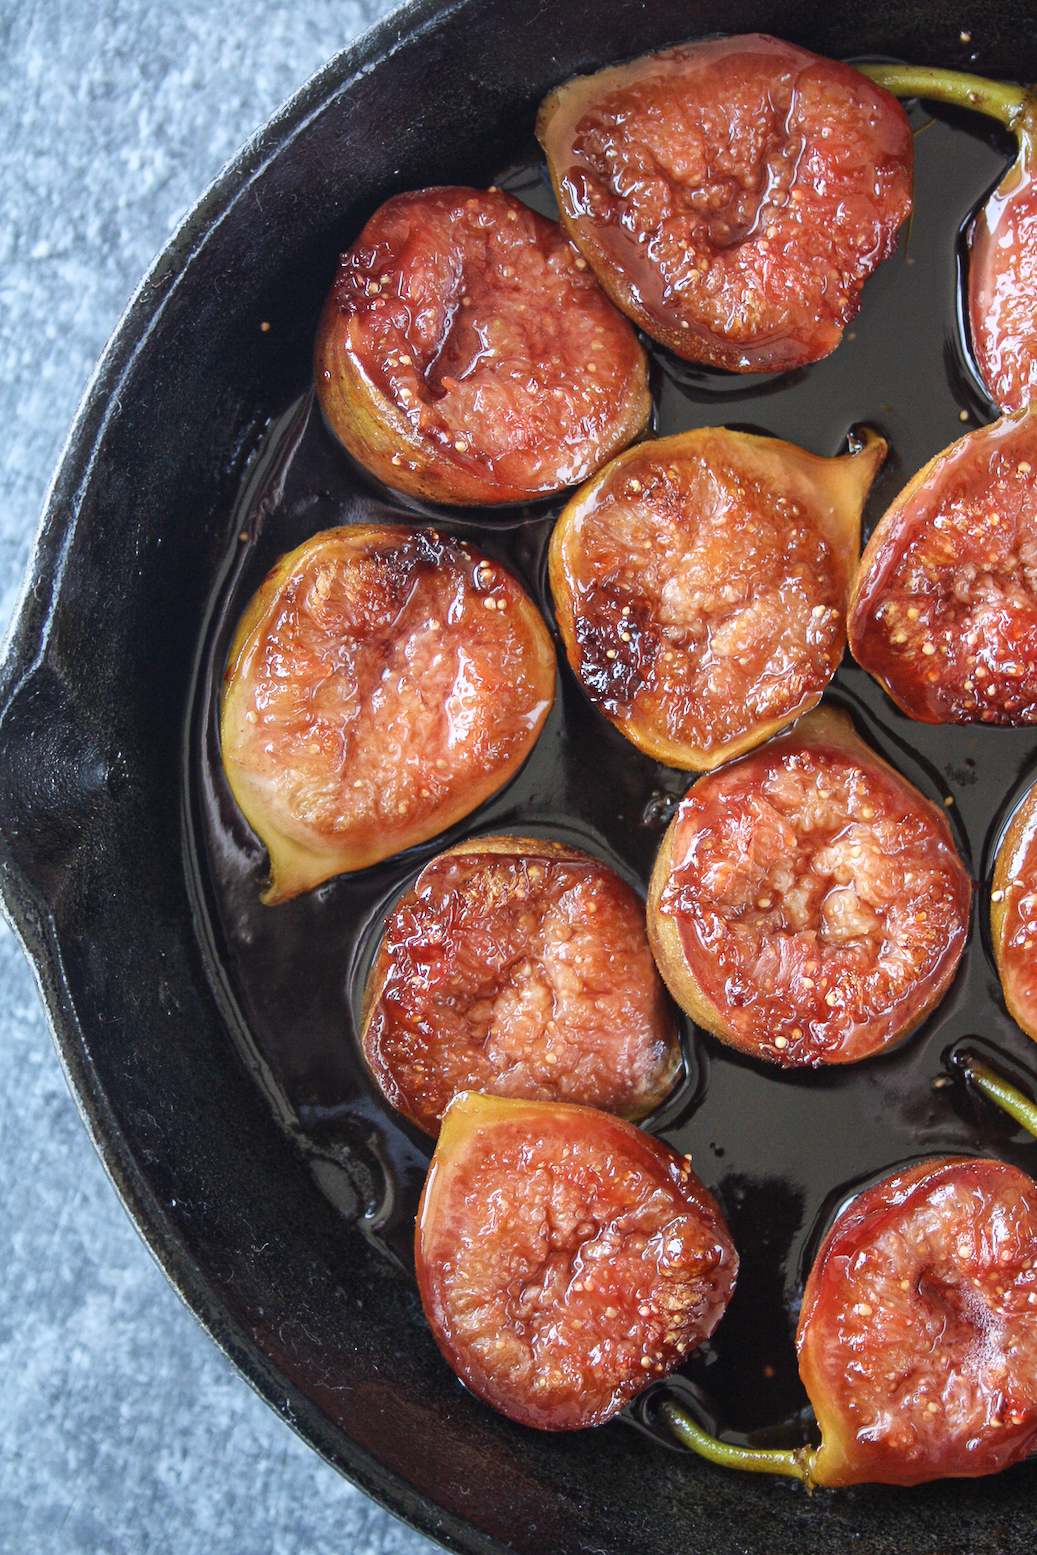 CaramelisedFigs1